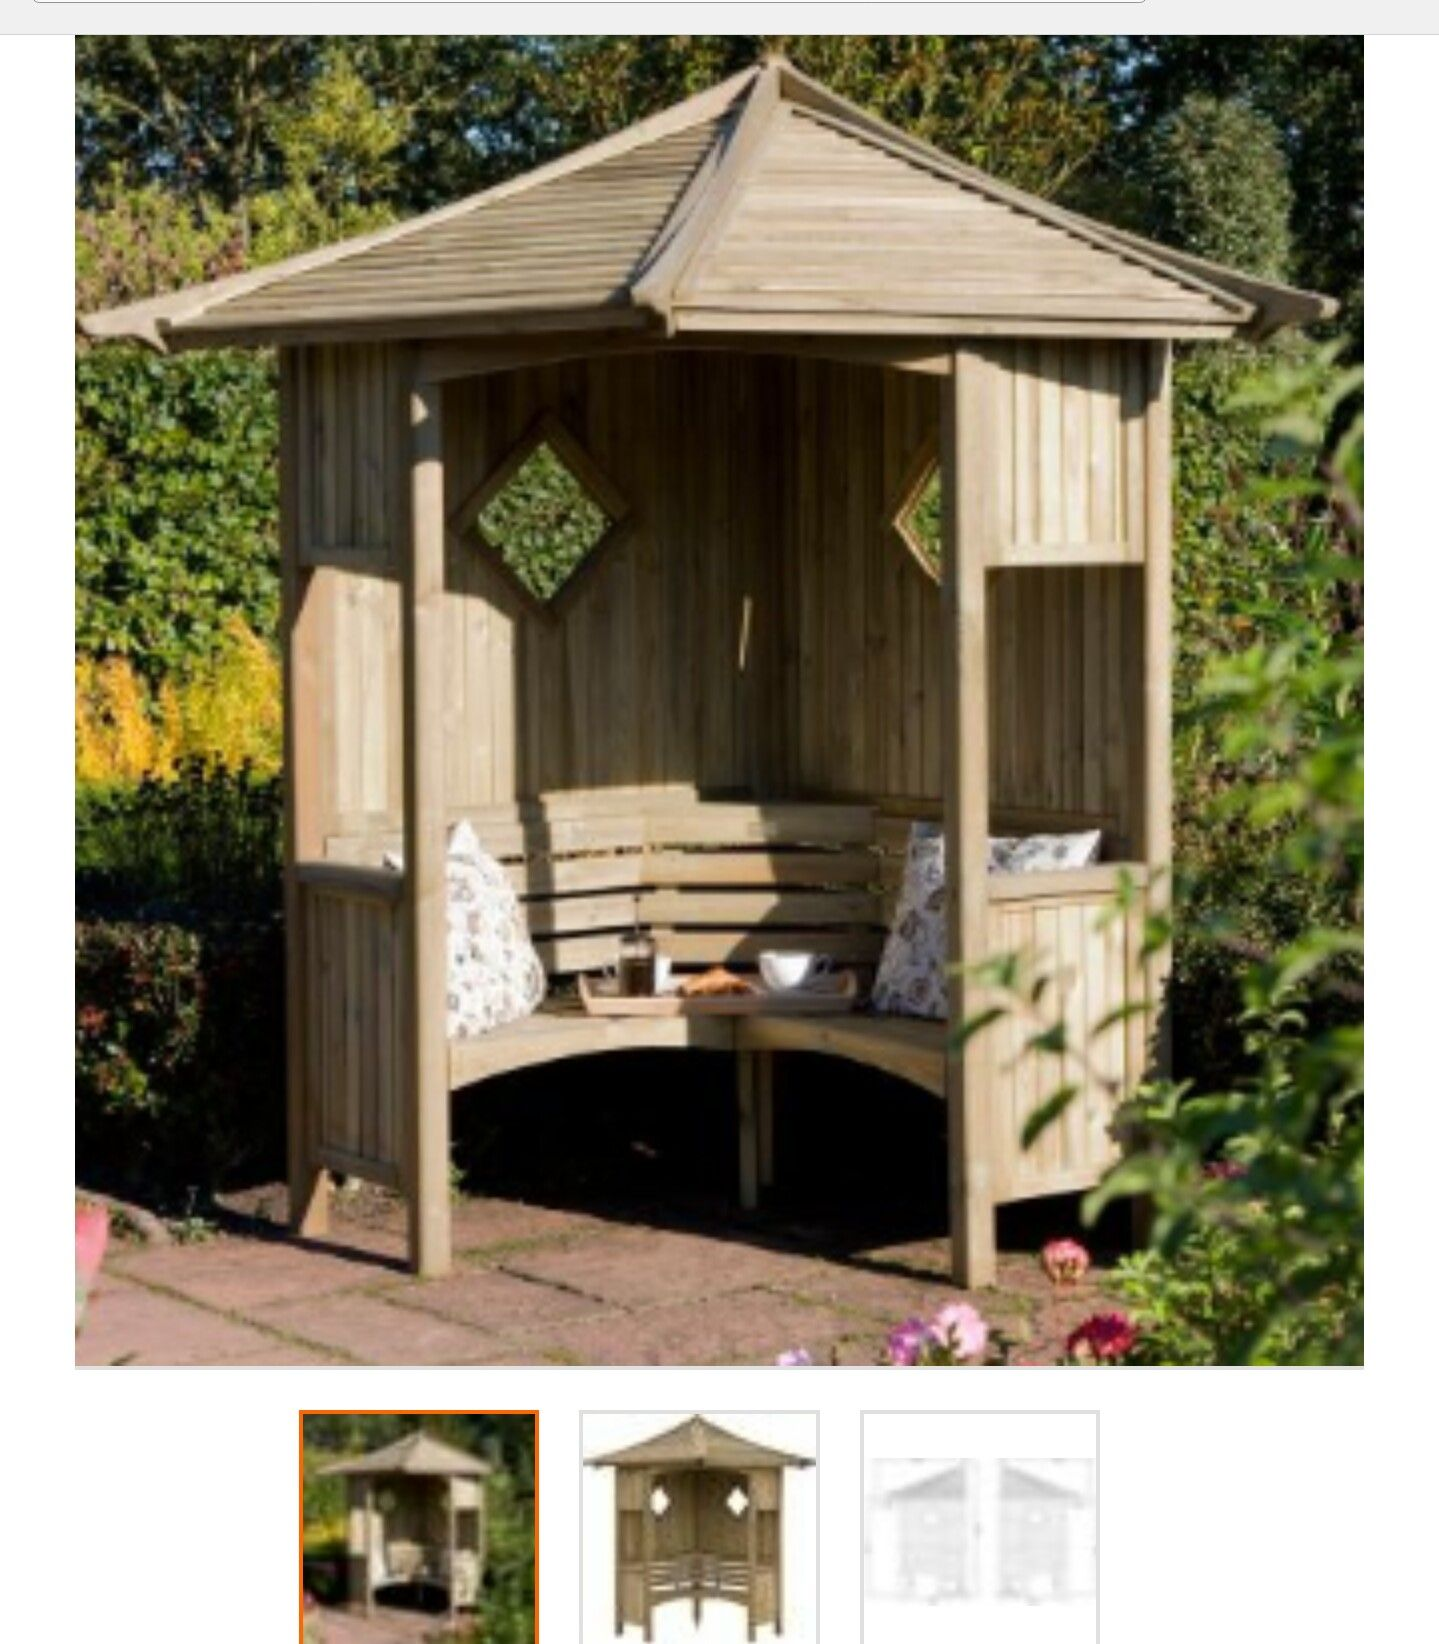 B&Q arbour is on my wishlist. Perfect for a quiet, sunny corner ...